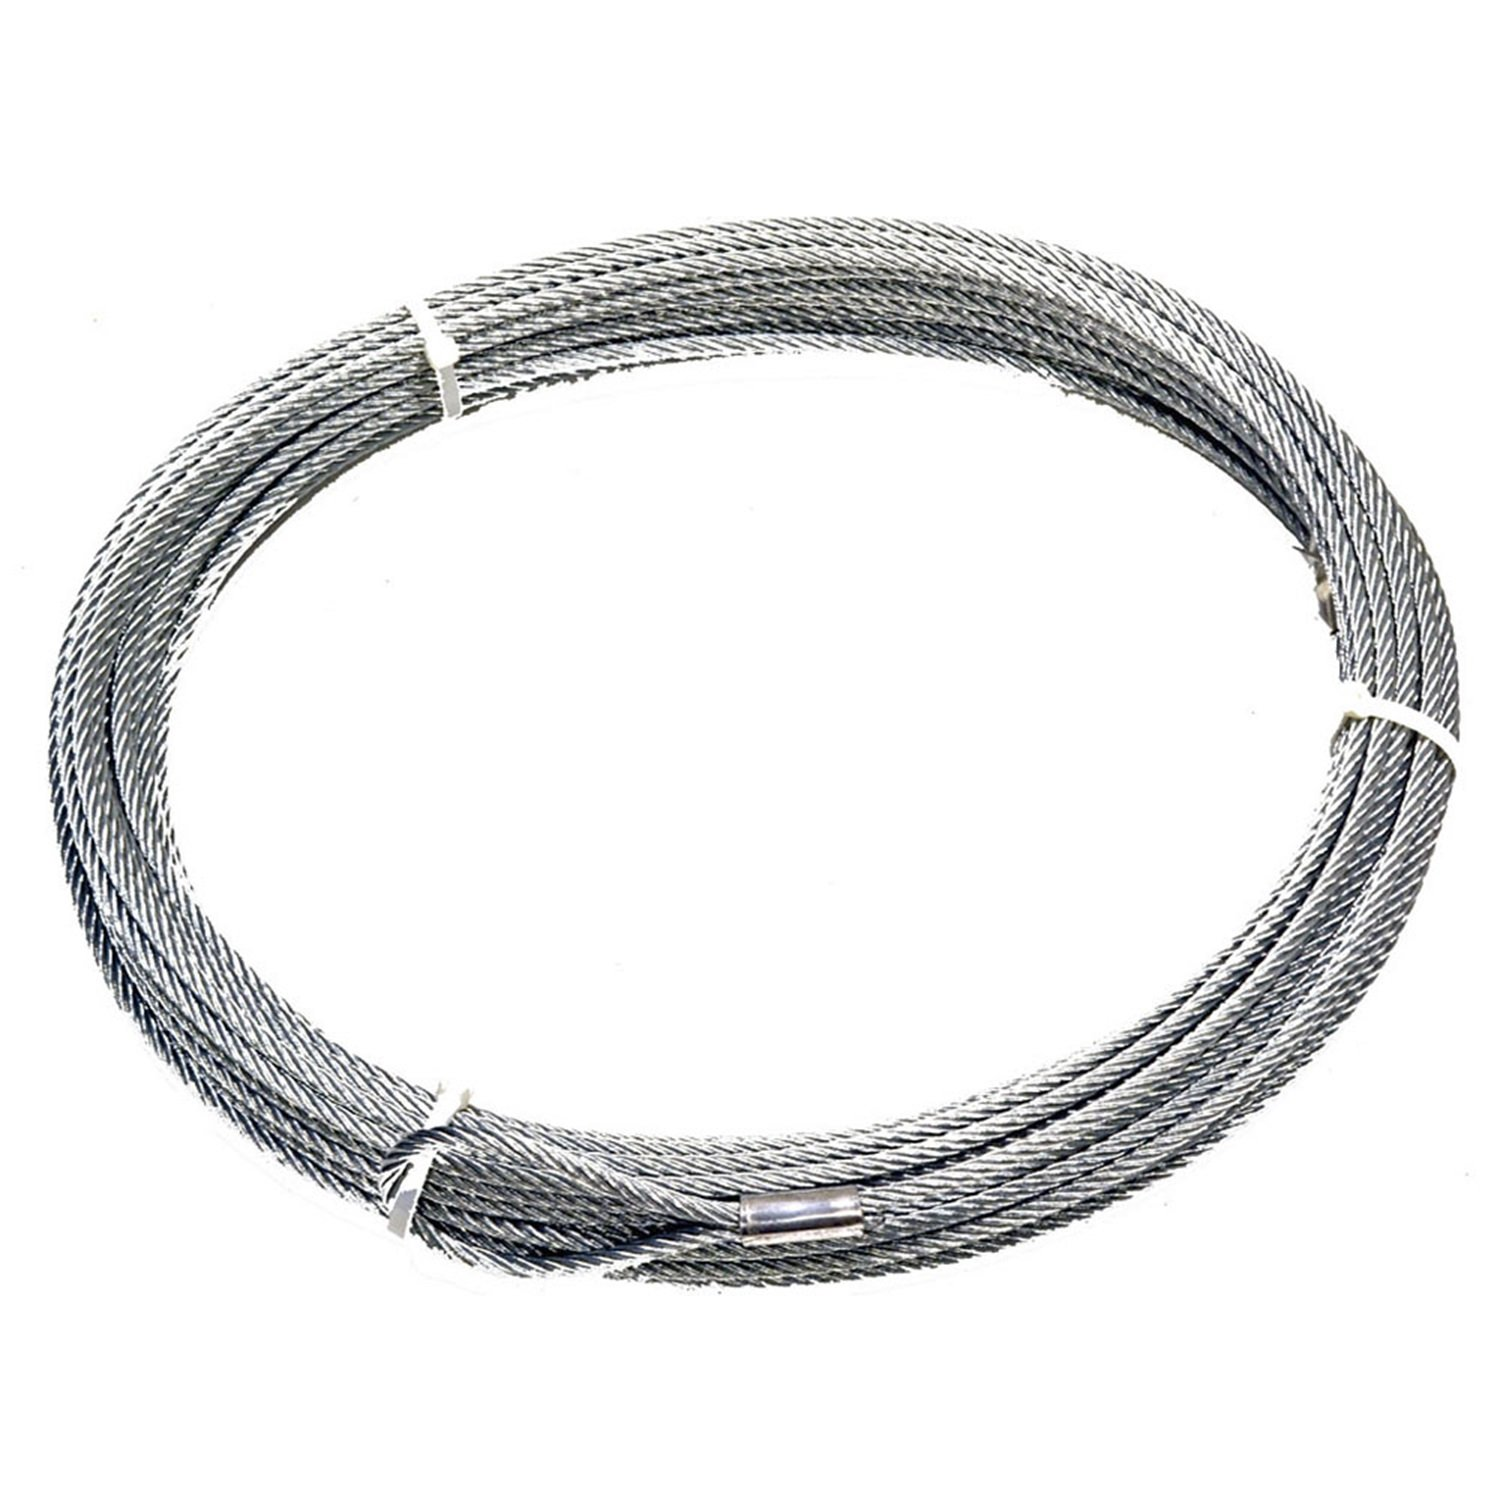 WARN 25987 Winch Rope - 5/16 in. x 125 ft.